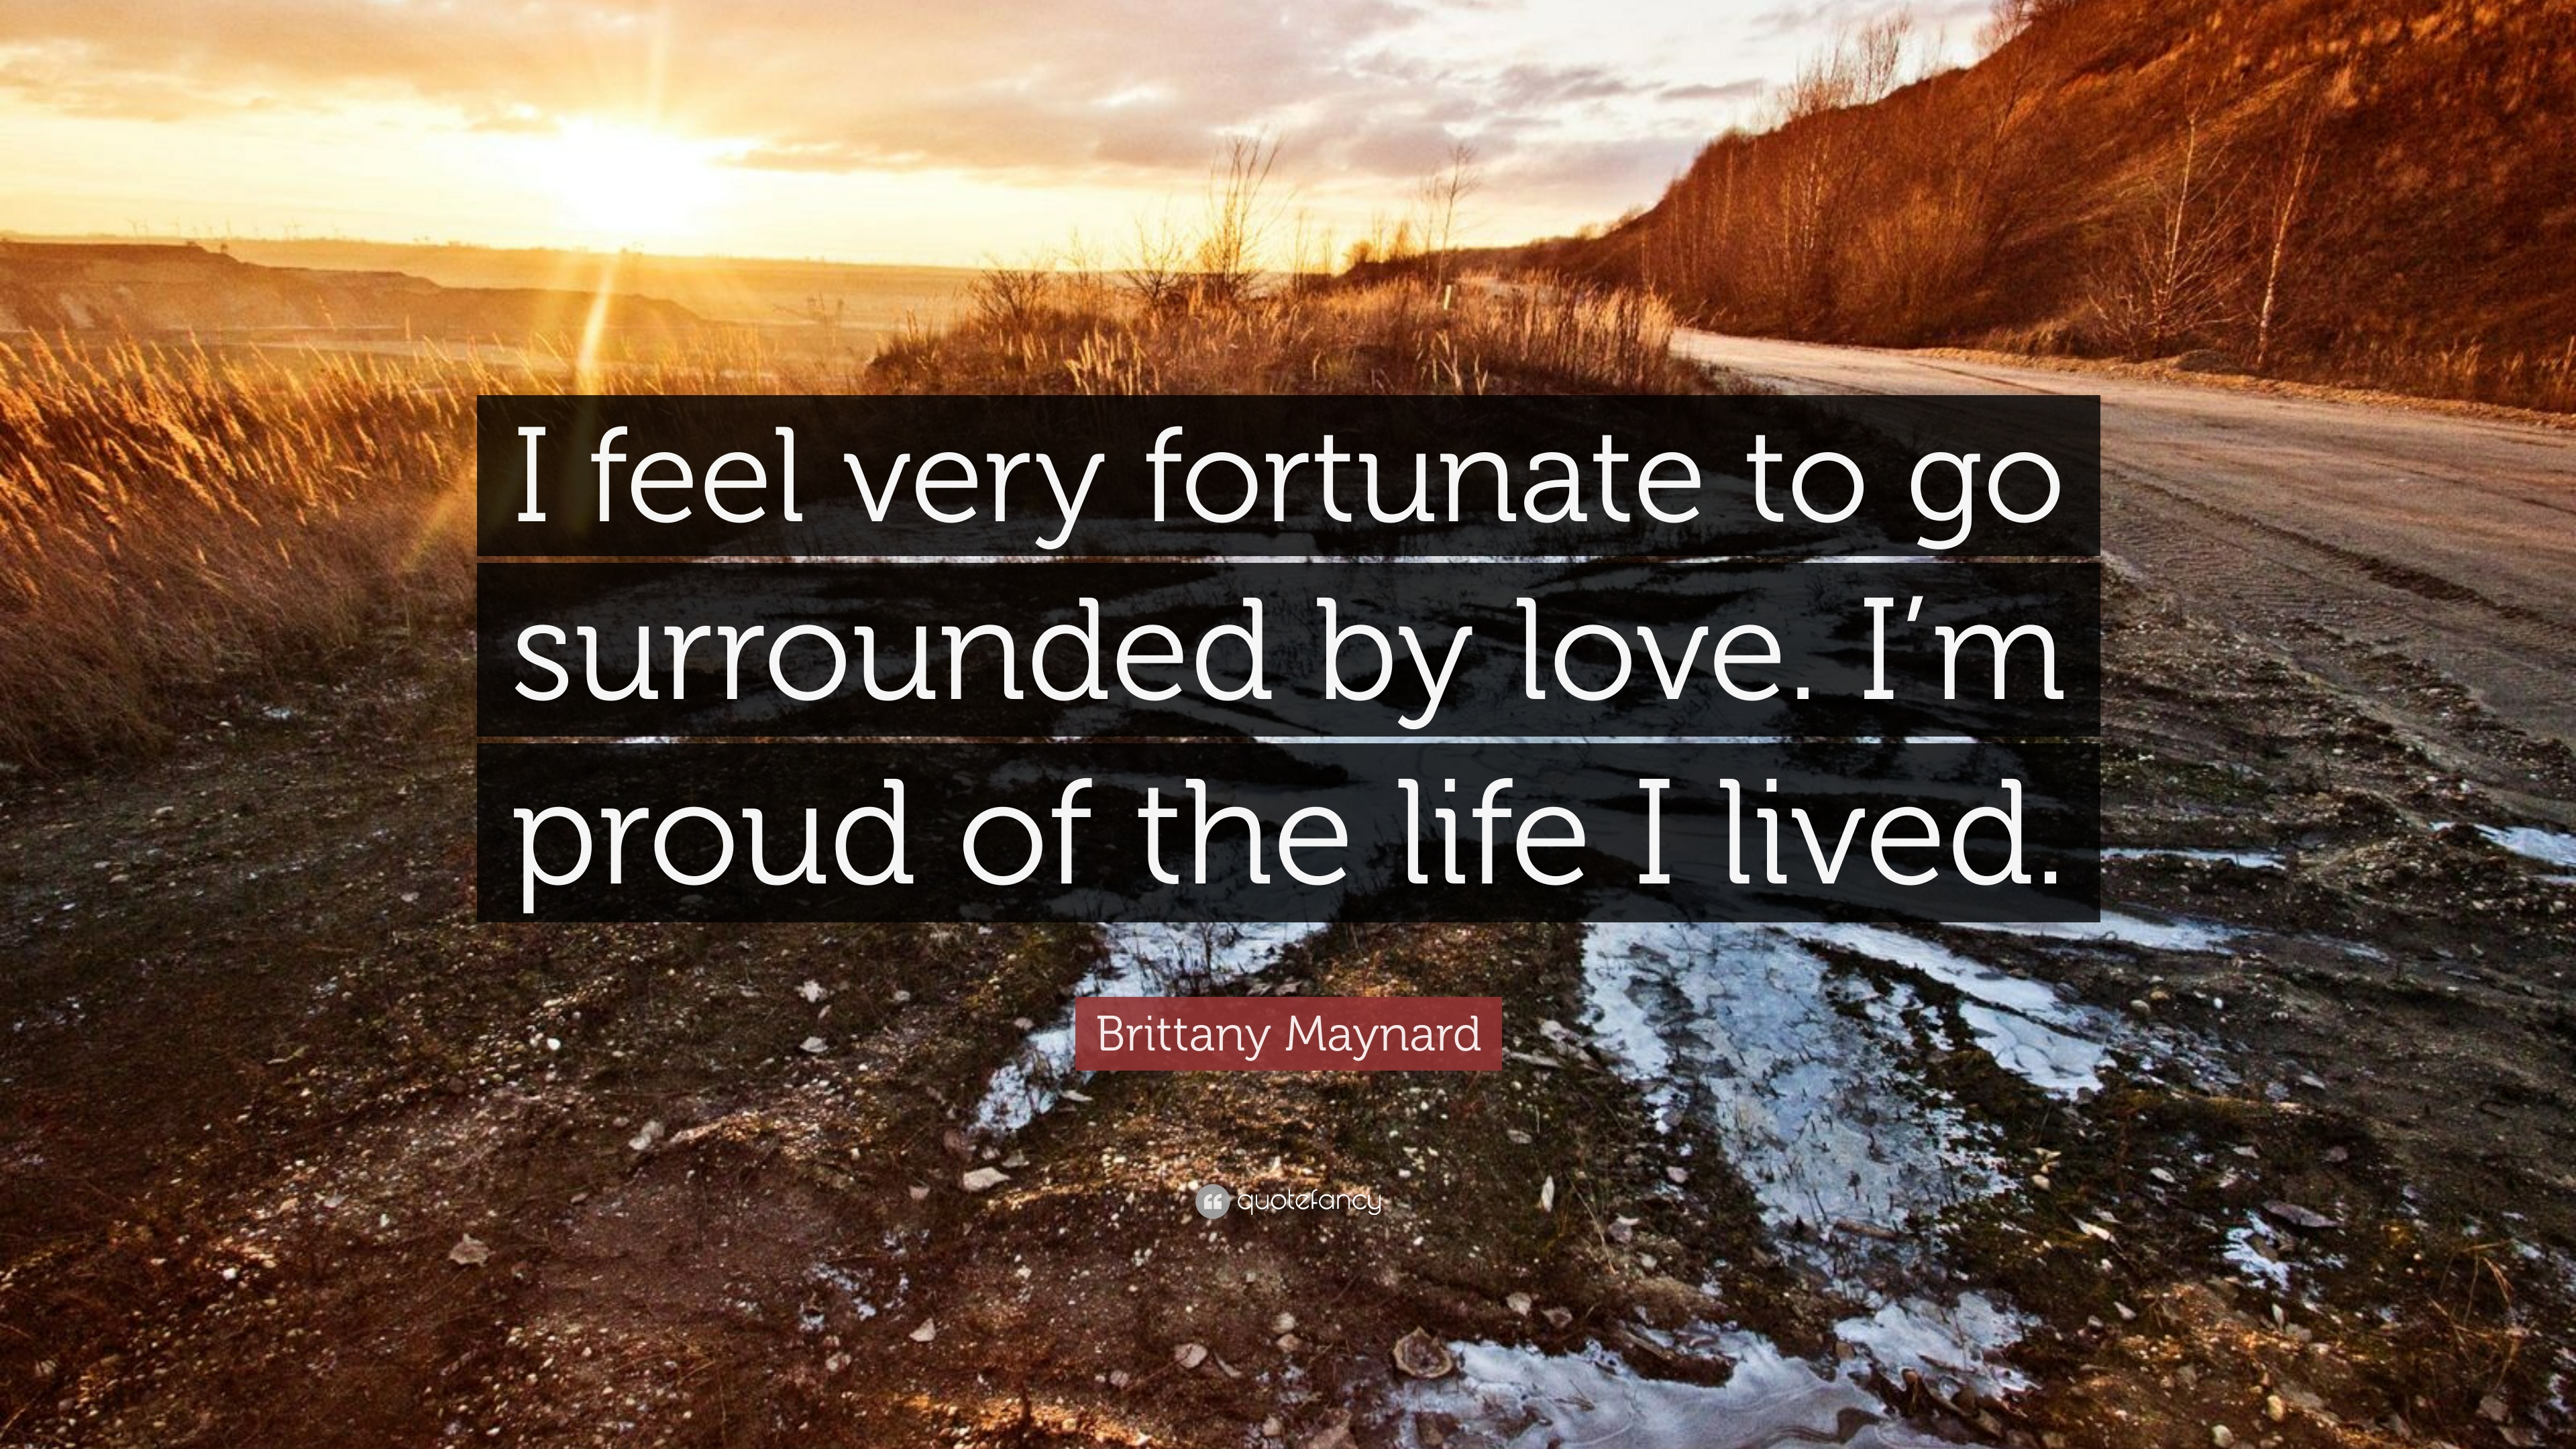 Surrounded By Love Quotes: Brittany Maynard Quotes (17 Wallpapers)